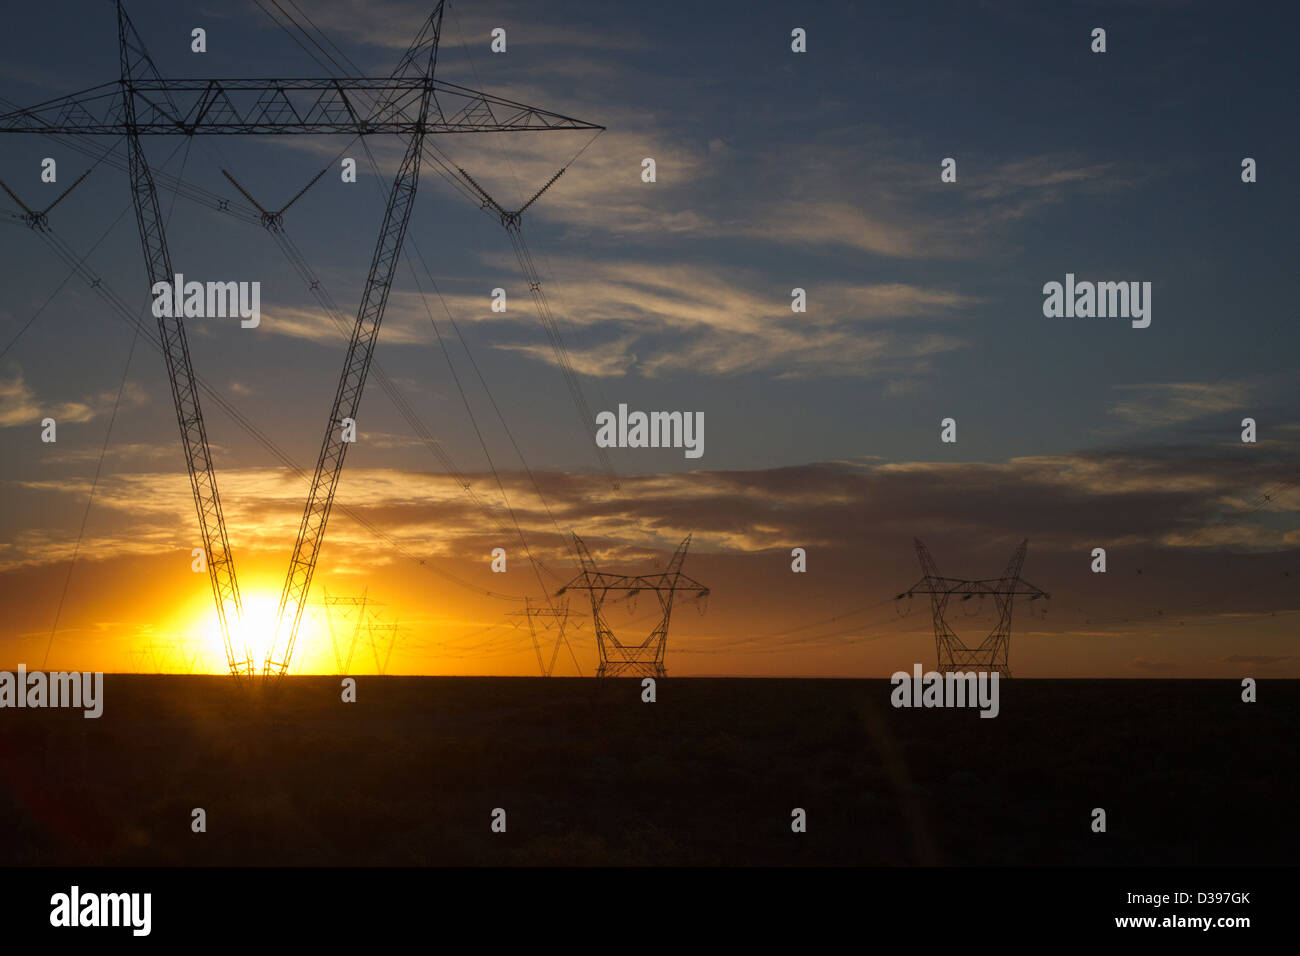 The fading sun bursts through transmission lines on the Argentine flatlands - Stock Image